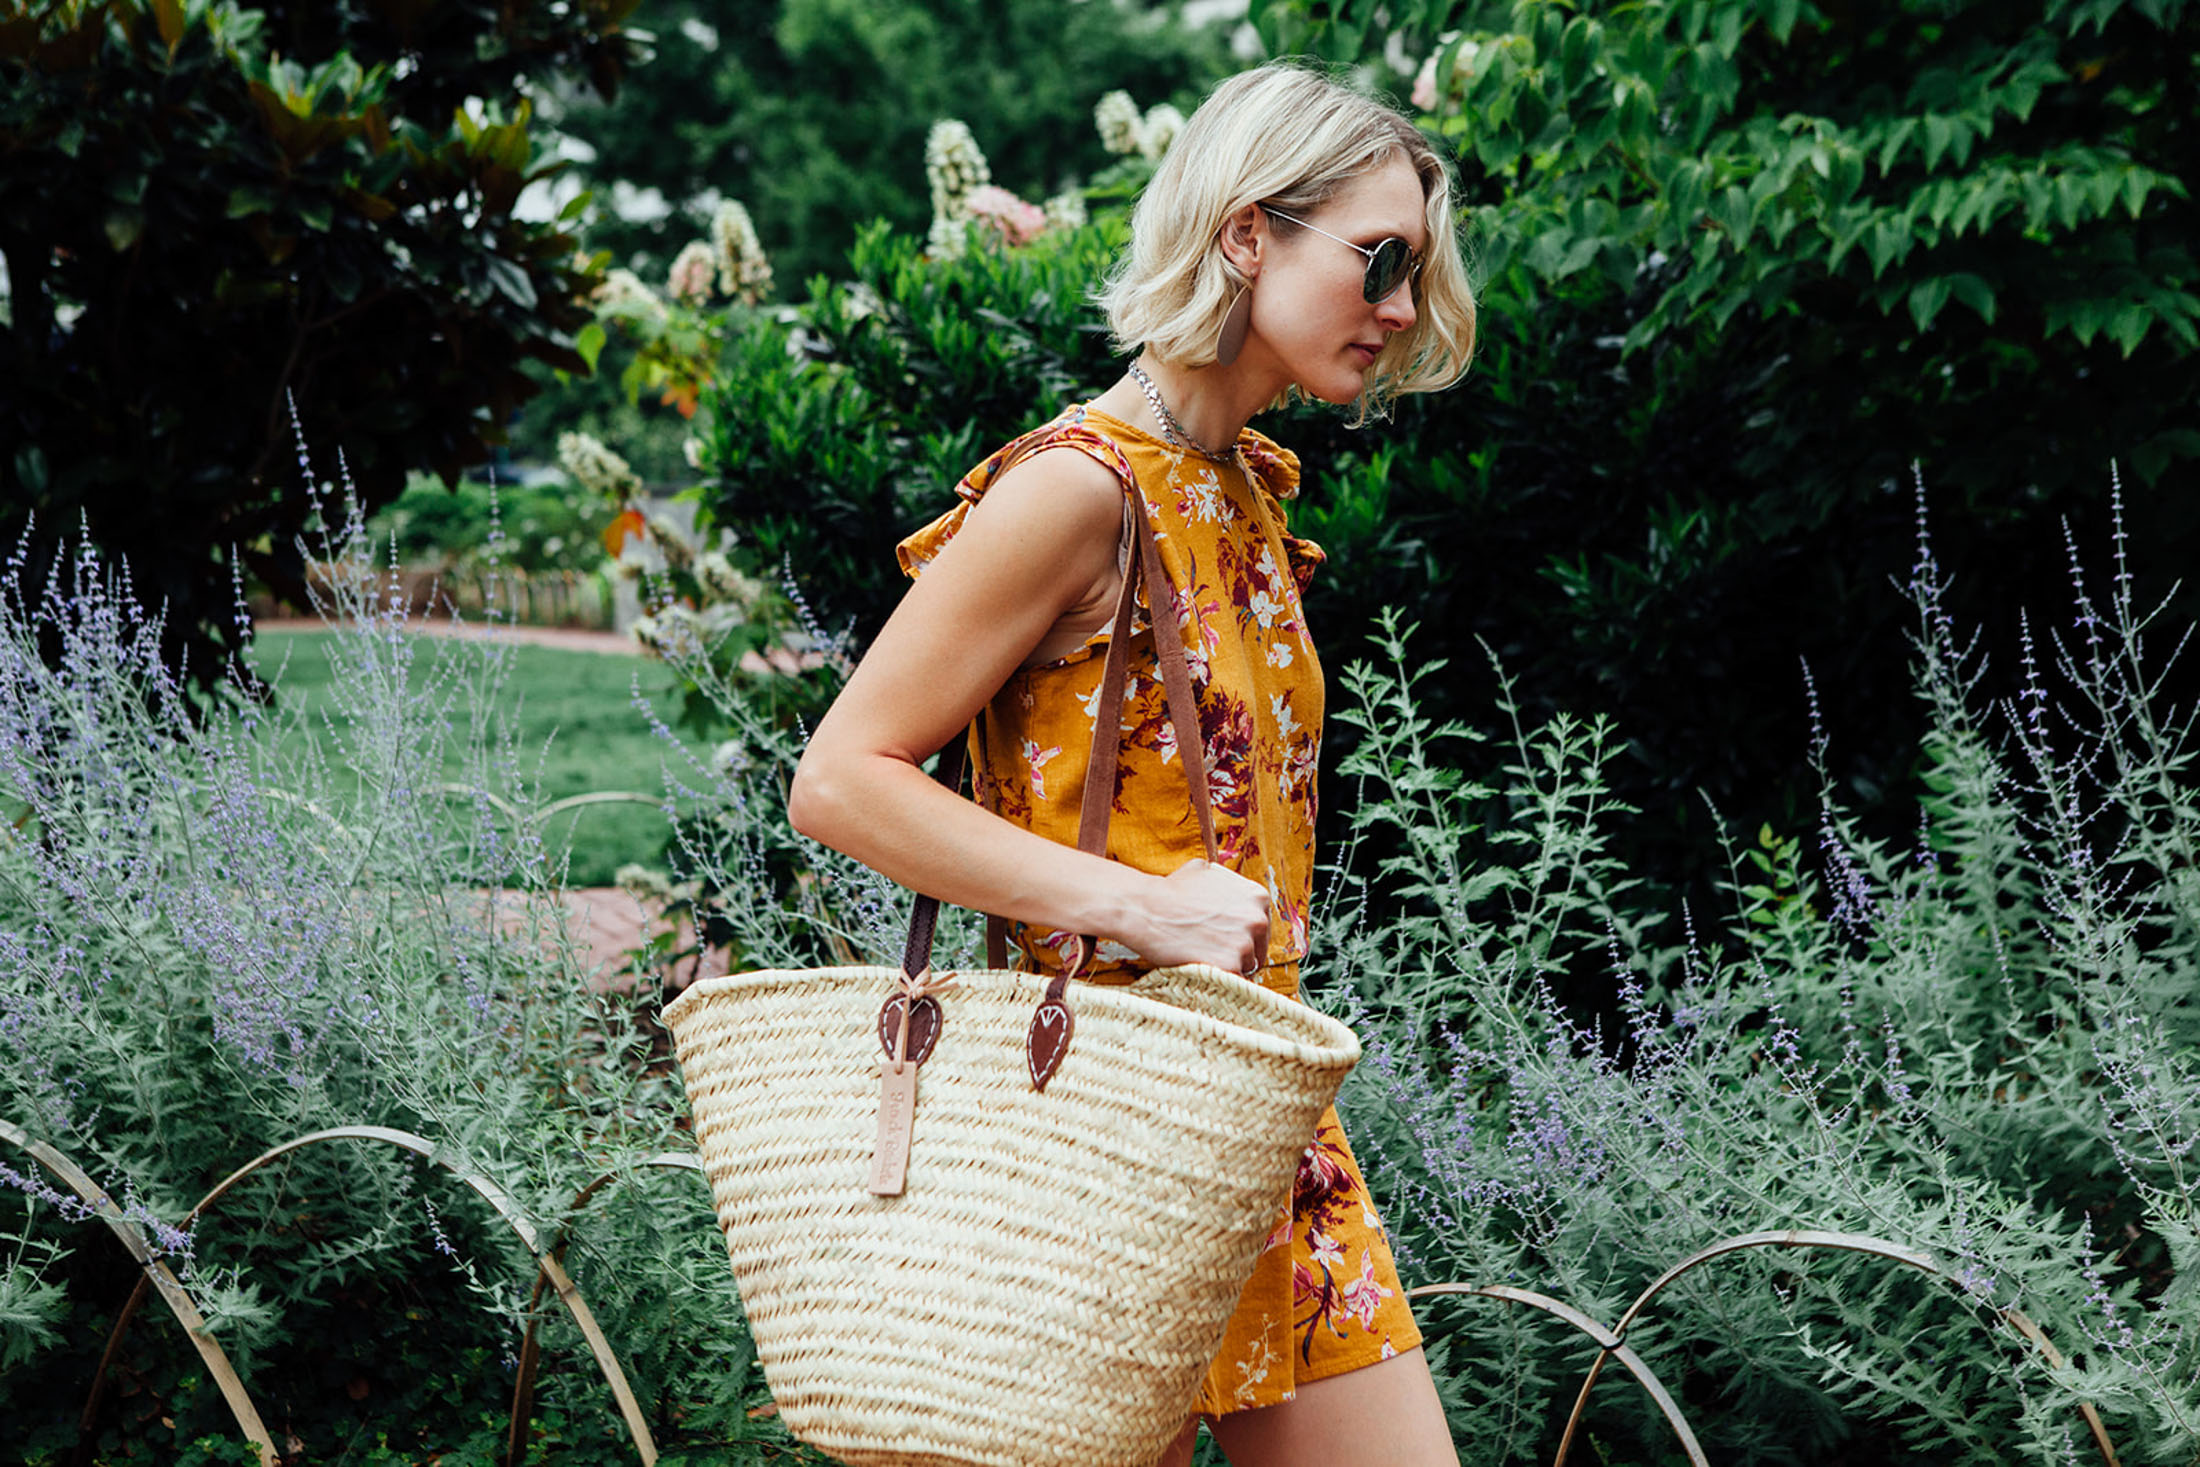 straw-tote-bag-floral-shorts-and-top